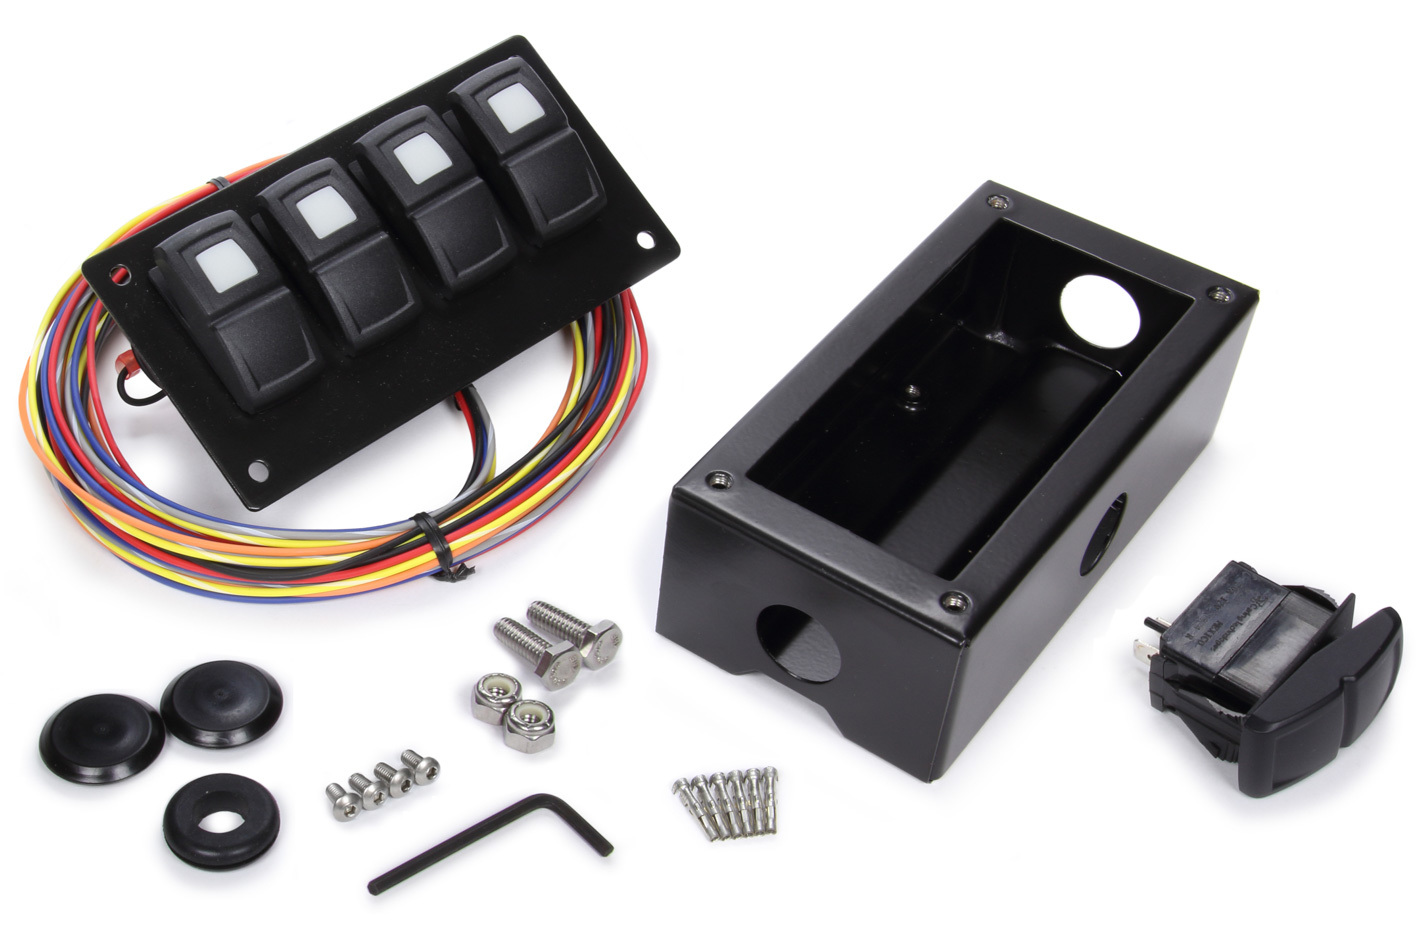 Painless Wiring 58109 Switch Panel, Trail Rocker, Under Dash Mount, 4 Rockers, Installation Hardware / Wiring Harness Included, Black, Painless Track Rocker System, Kit